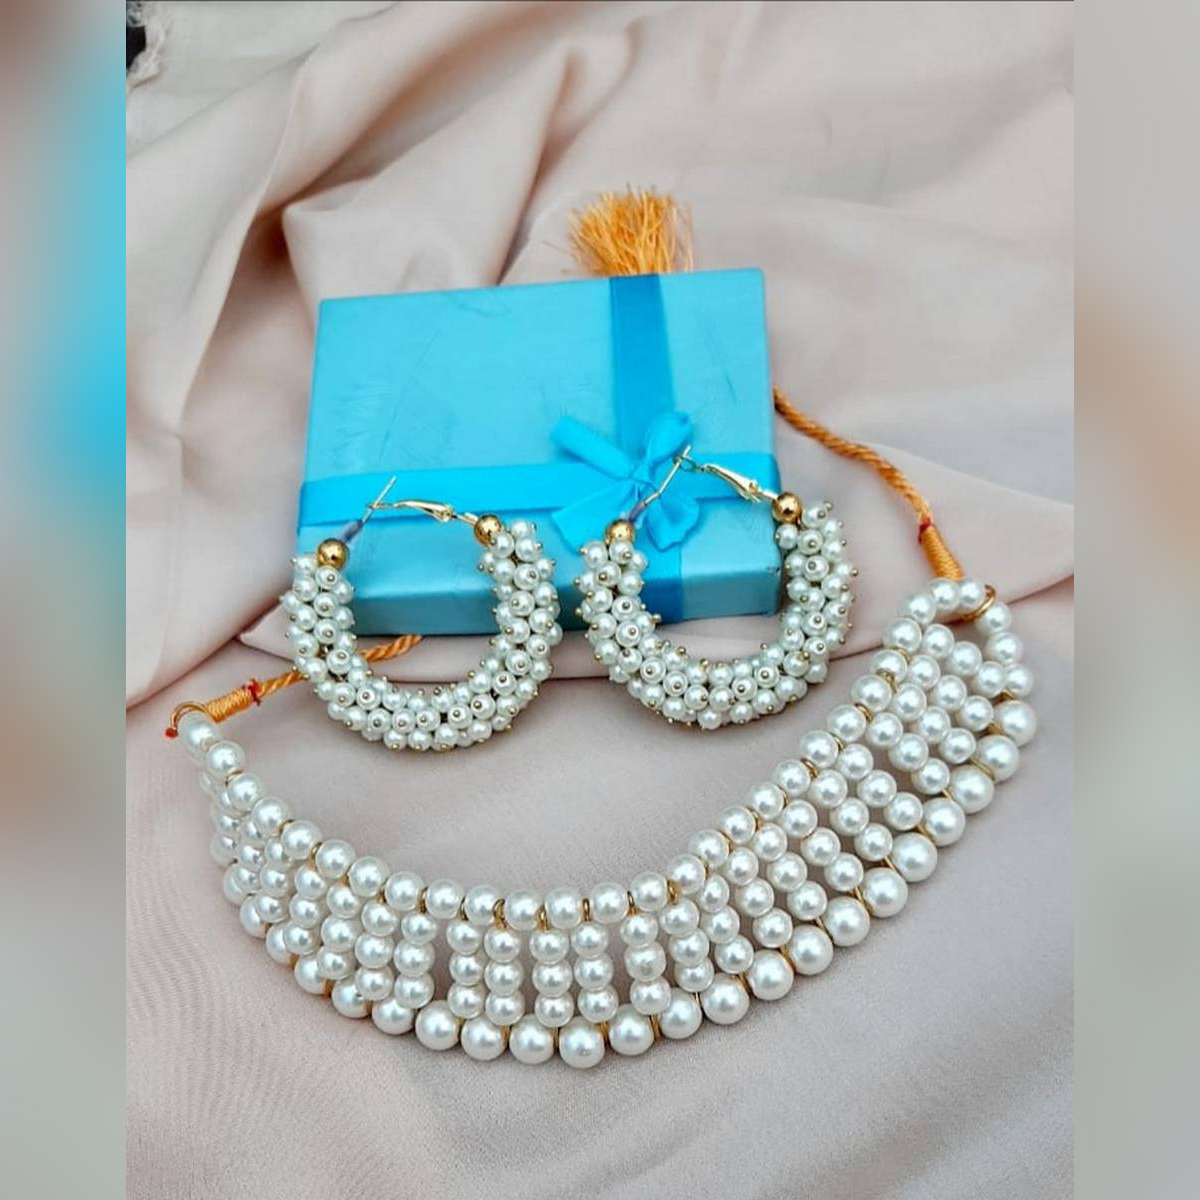 Amazing White Pearl Necklace With White Hoop Earrings Set-Box Free